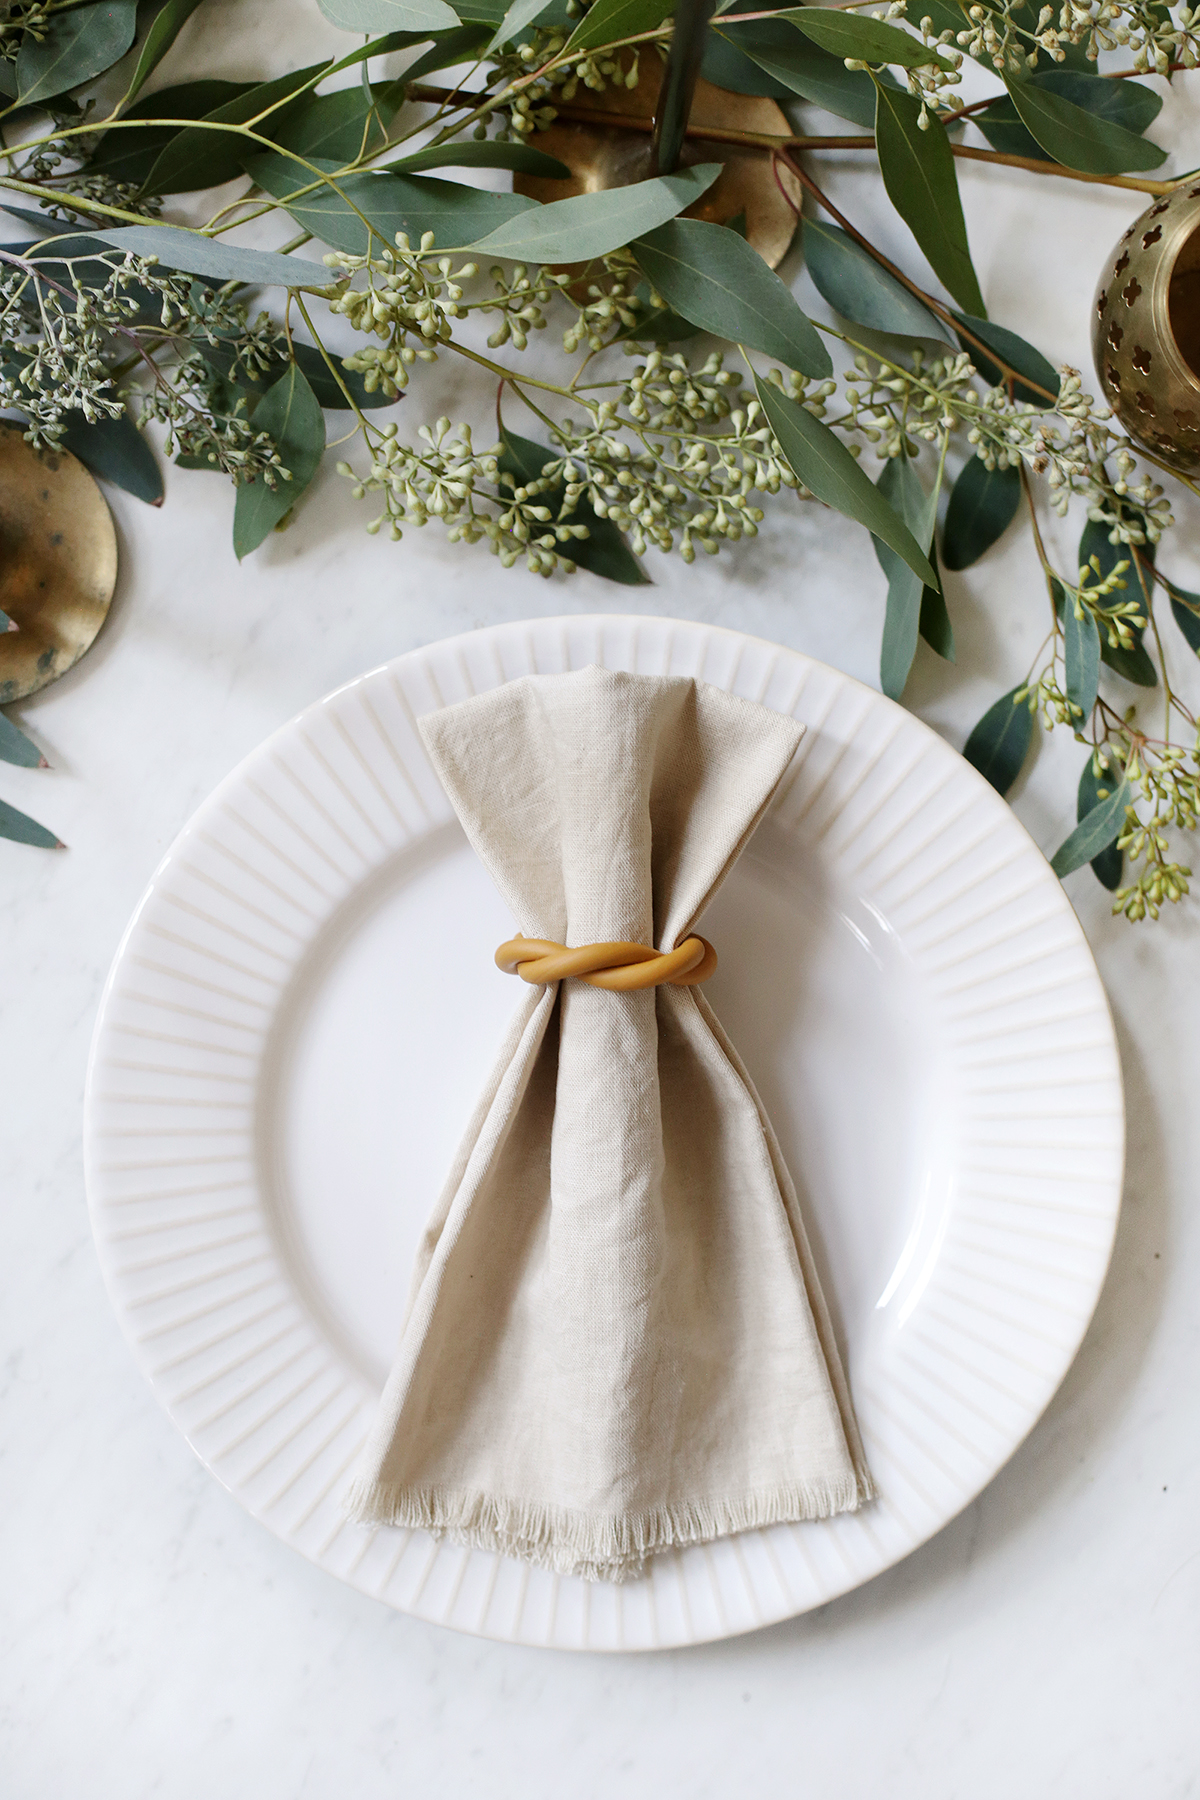 Diy Clay Napkin Rings The Merrythought